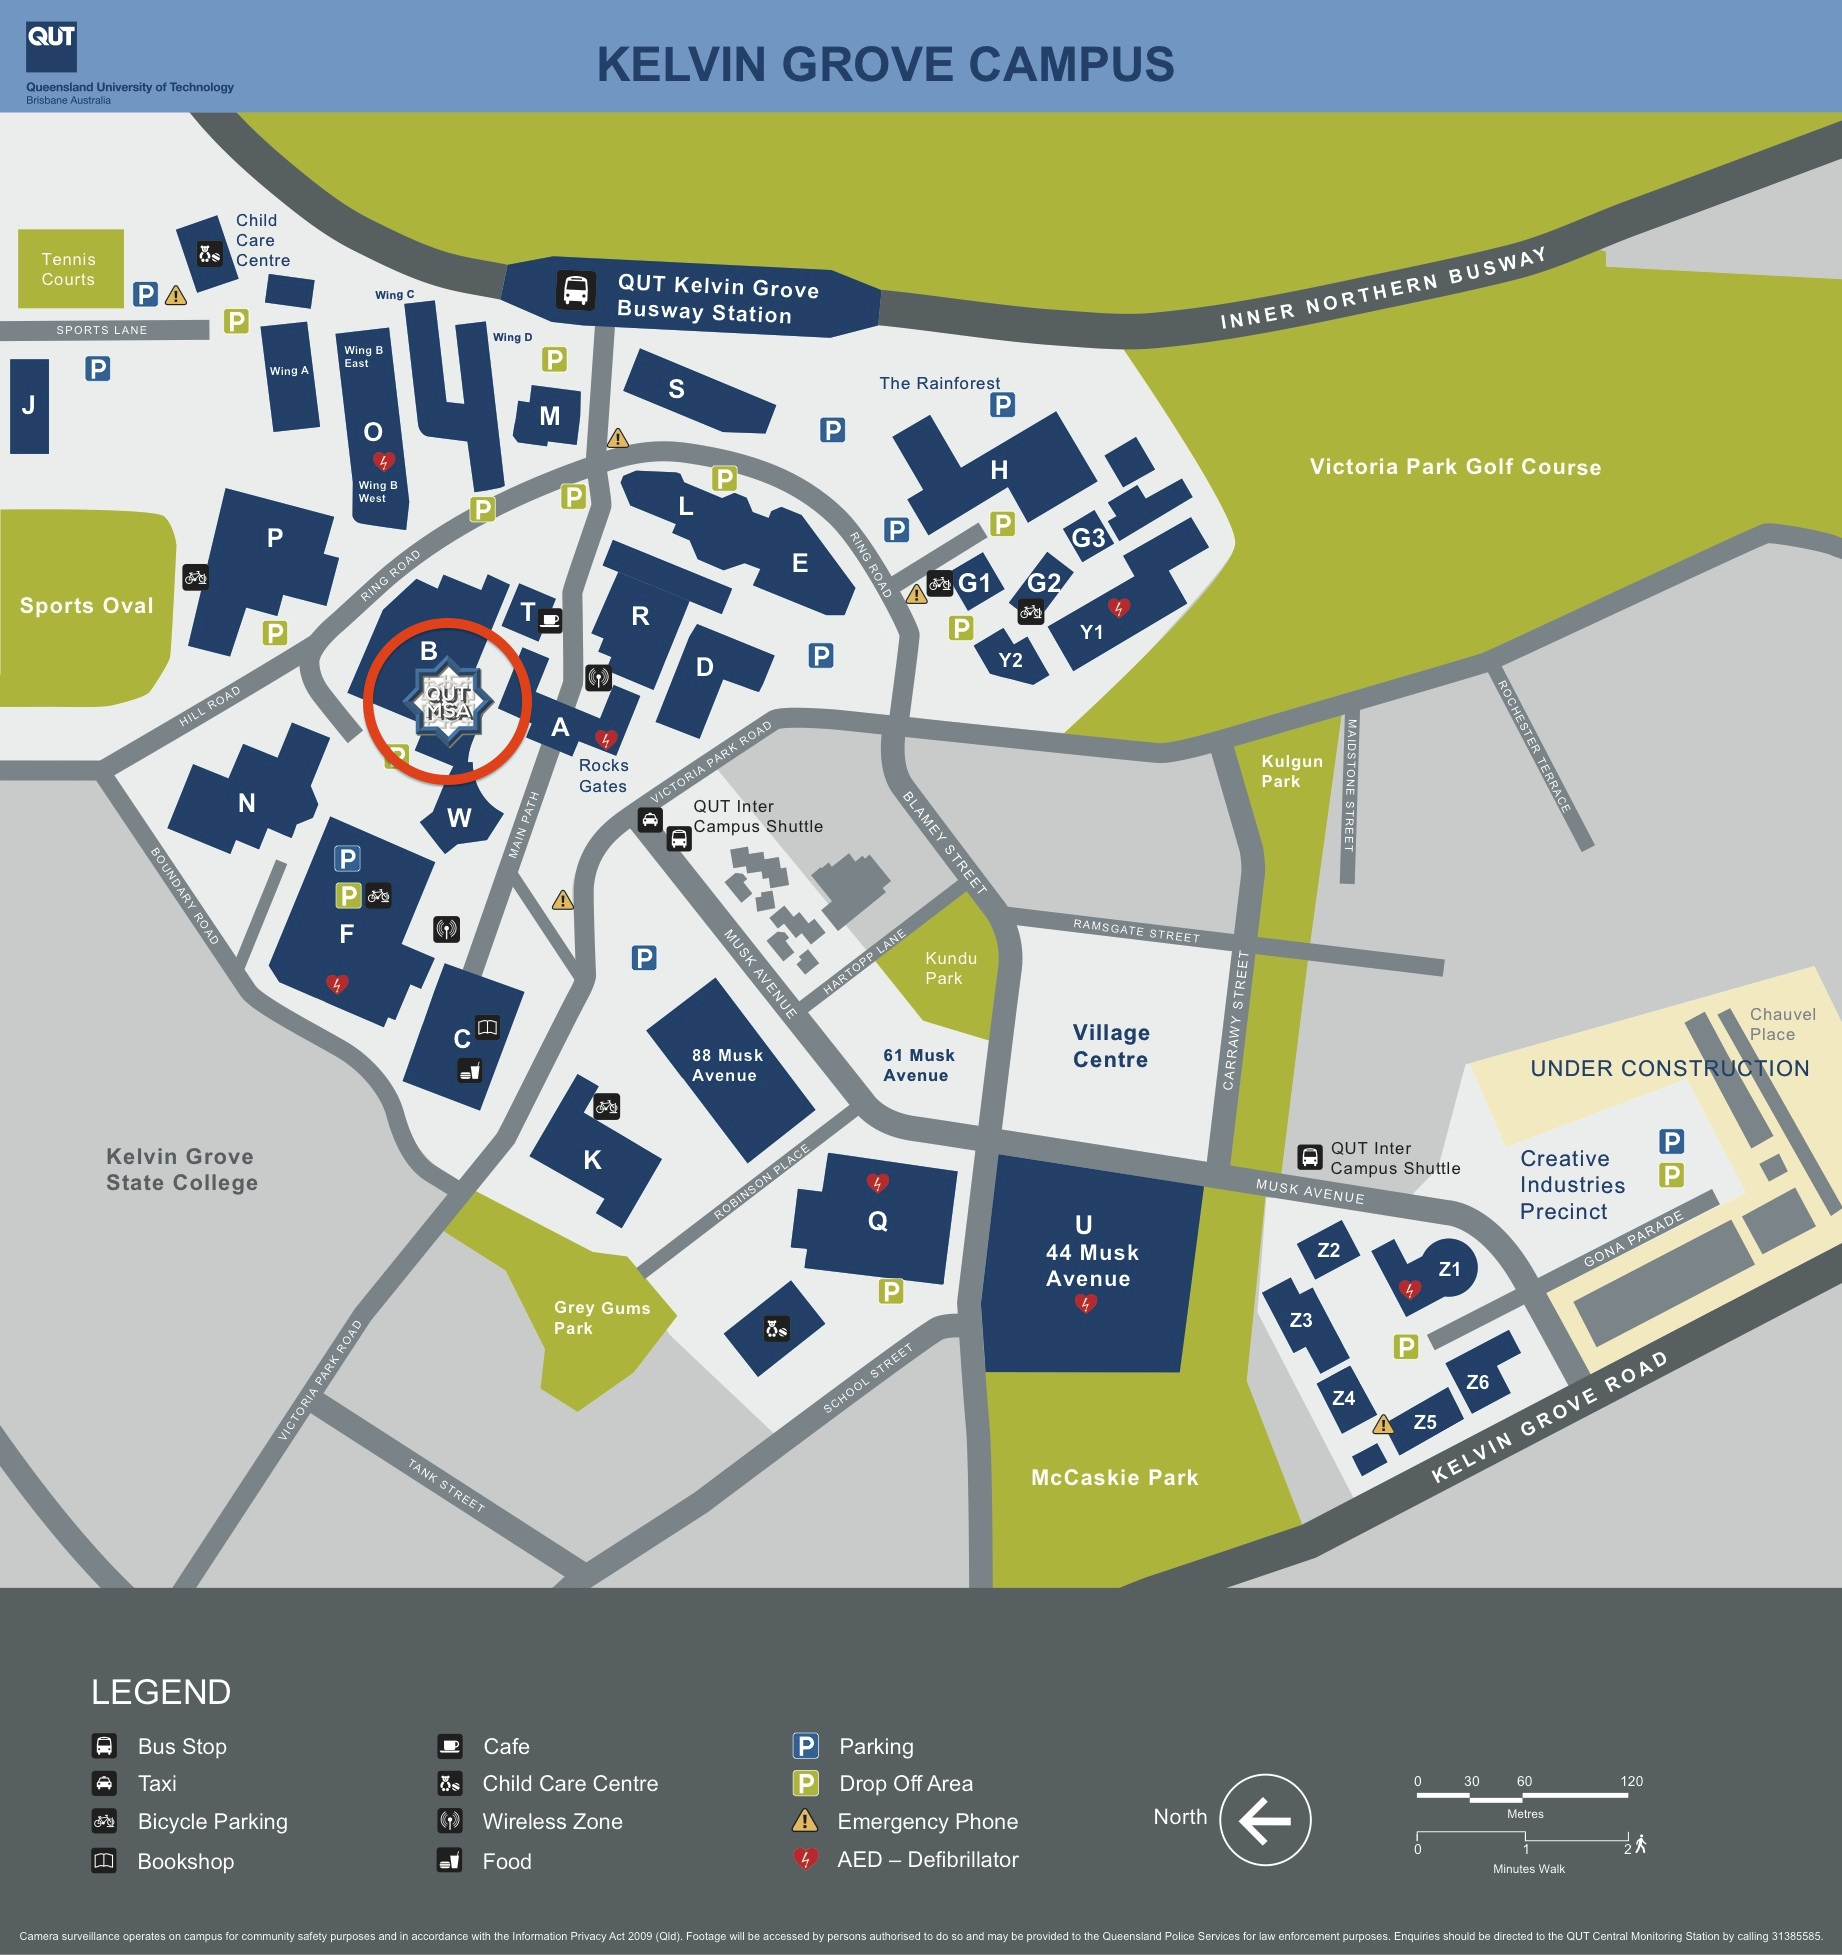 Qut Campus Map Qut Campus Map | compressportnederland Qut Campus Map